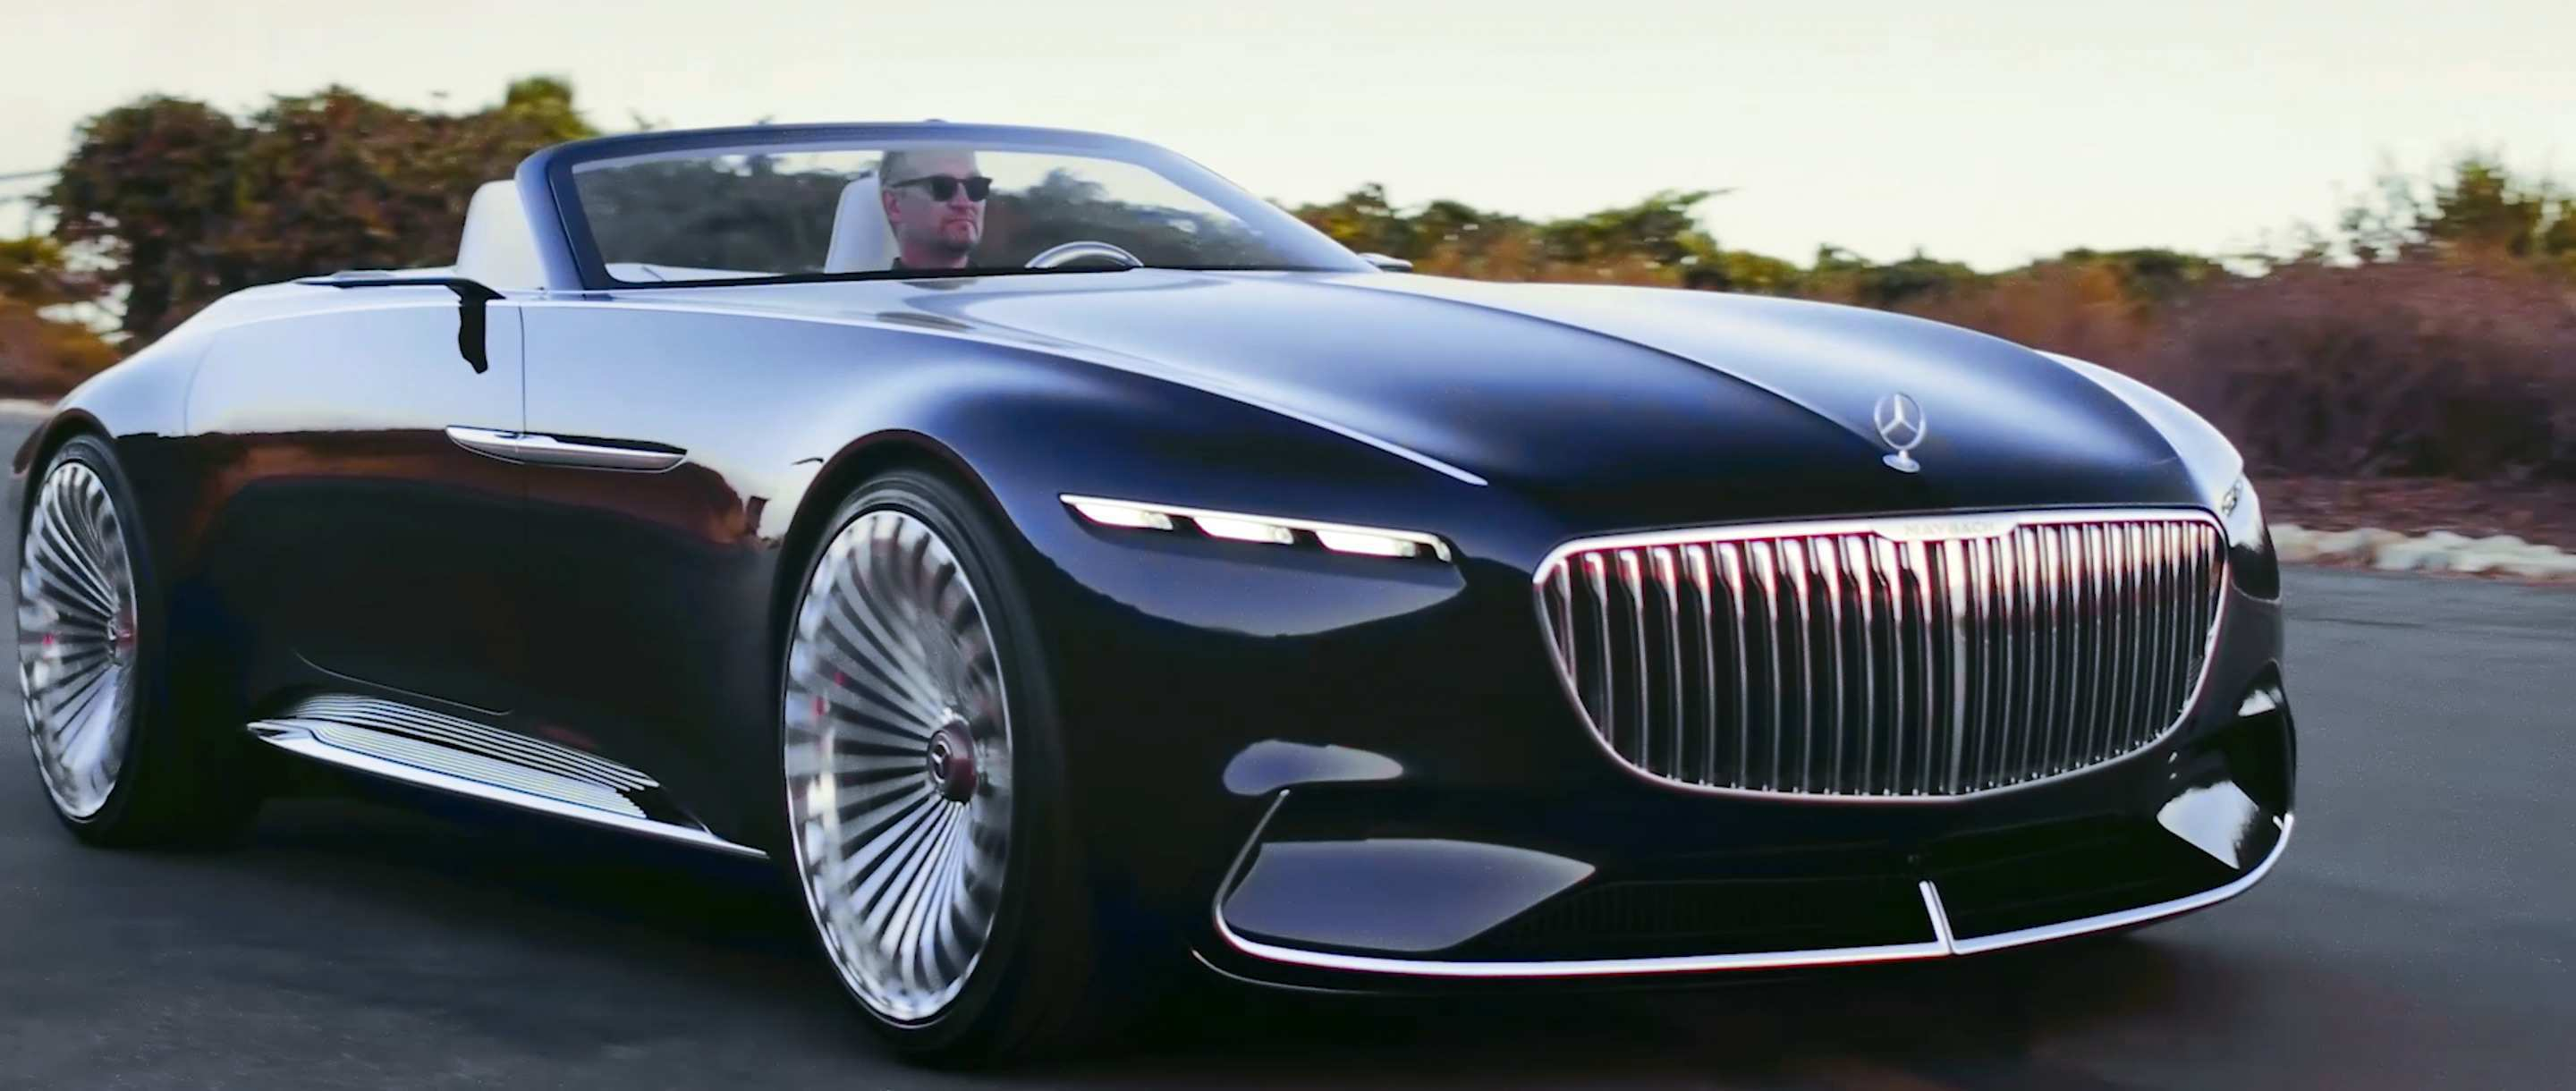 95 Gallery of 2019 Mercedes Maybach 6 Cabriolet Price Spy Shoot by 2019 Mercedes Maybach 6 Cabriolet Price